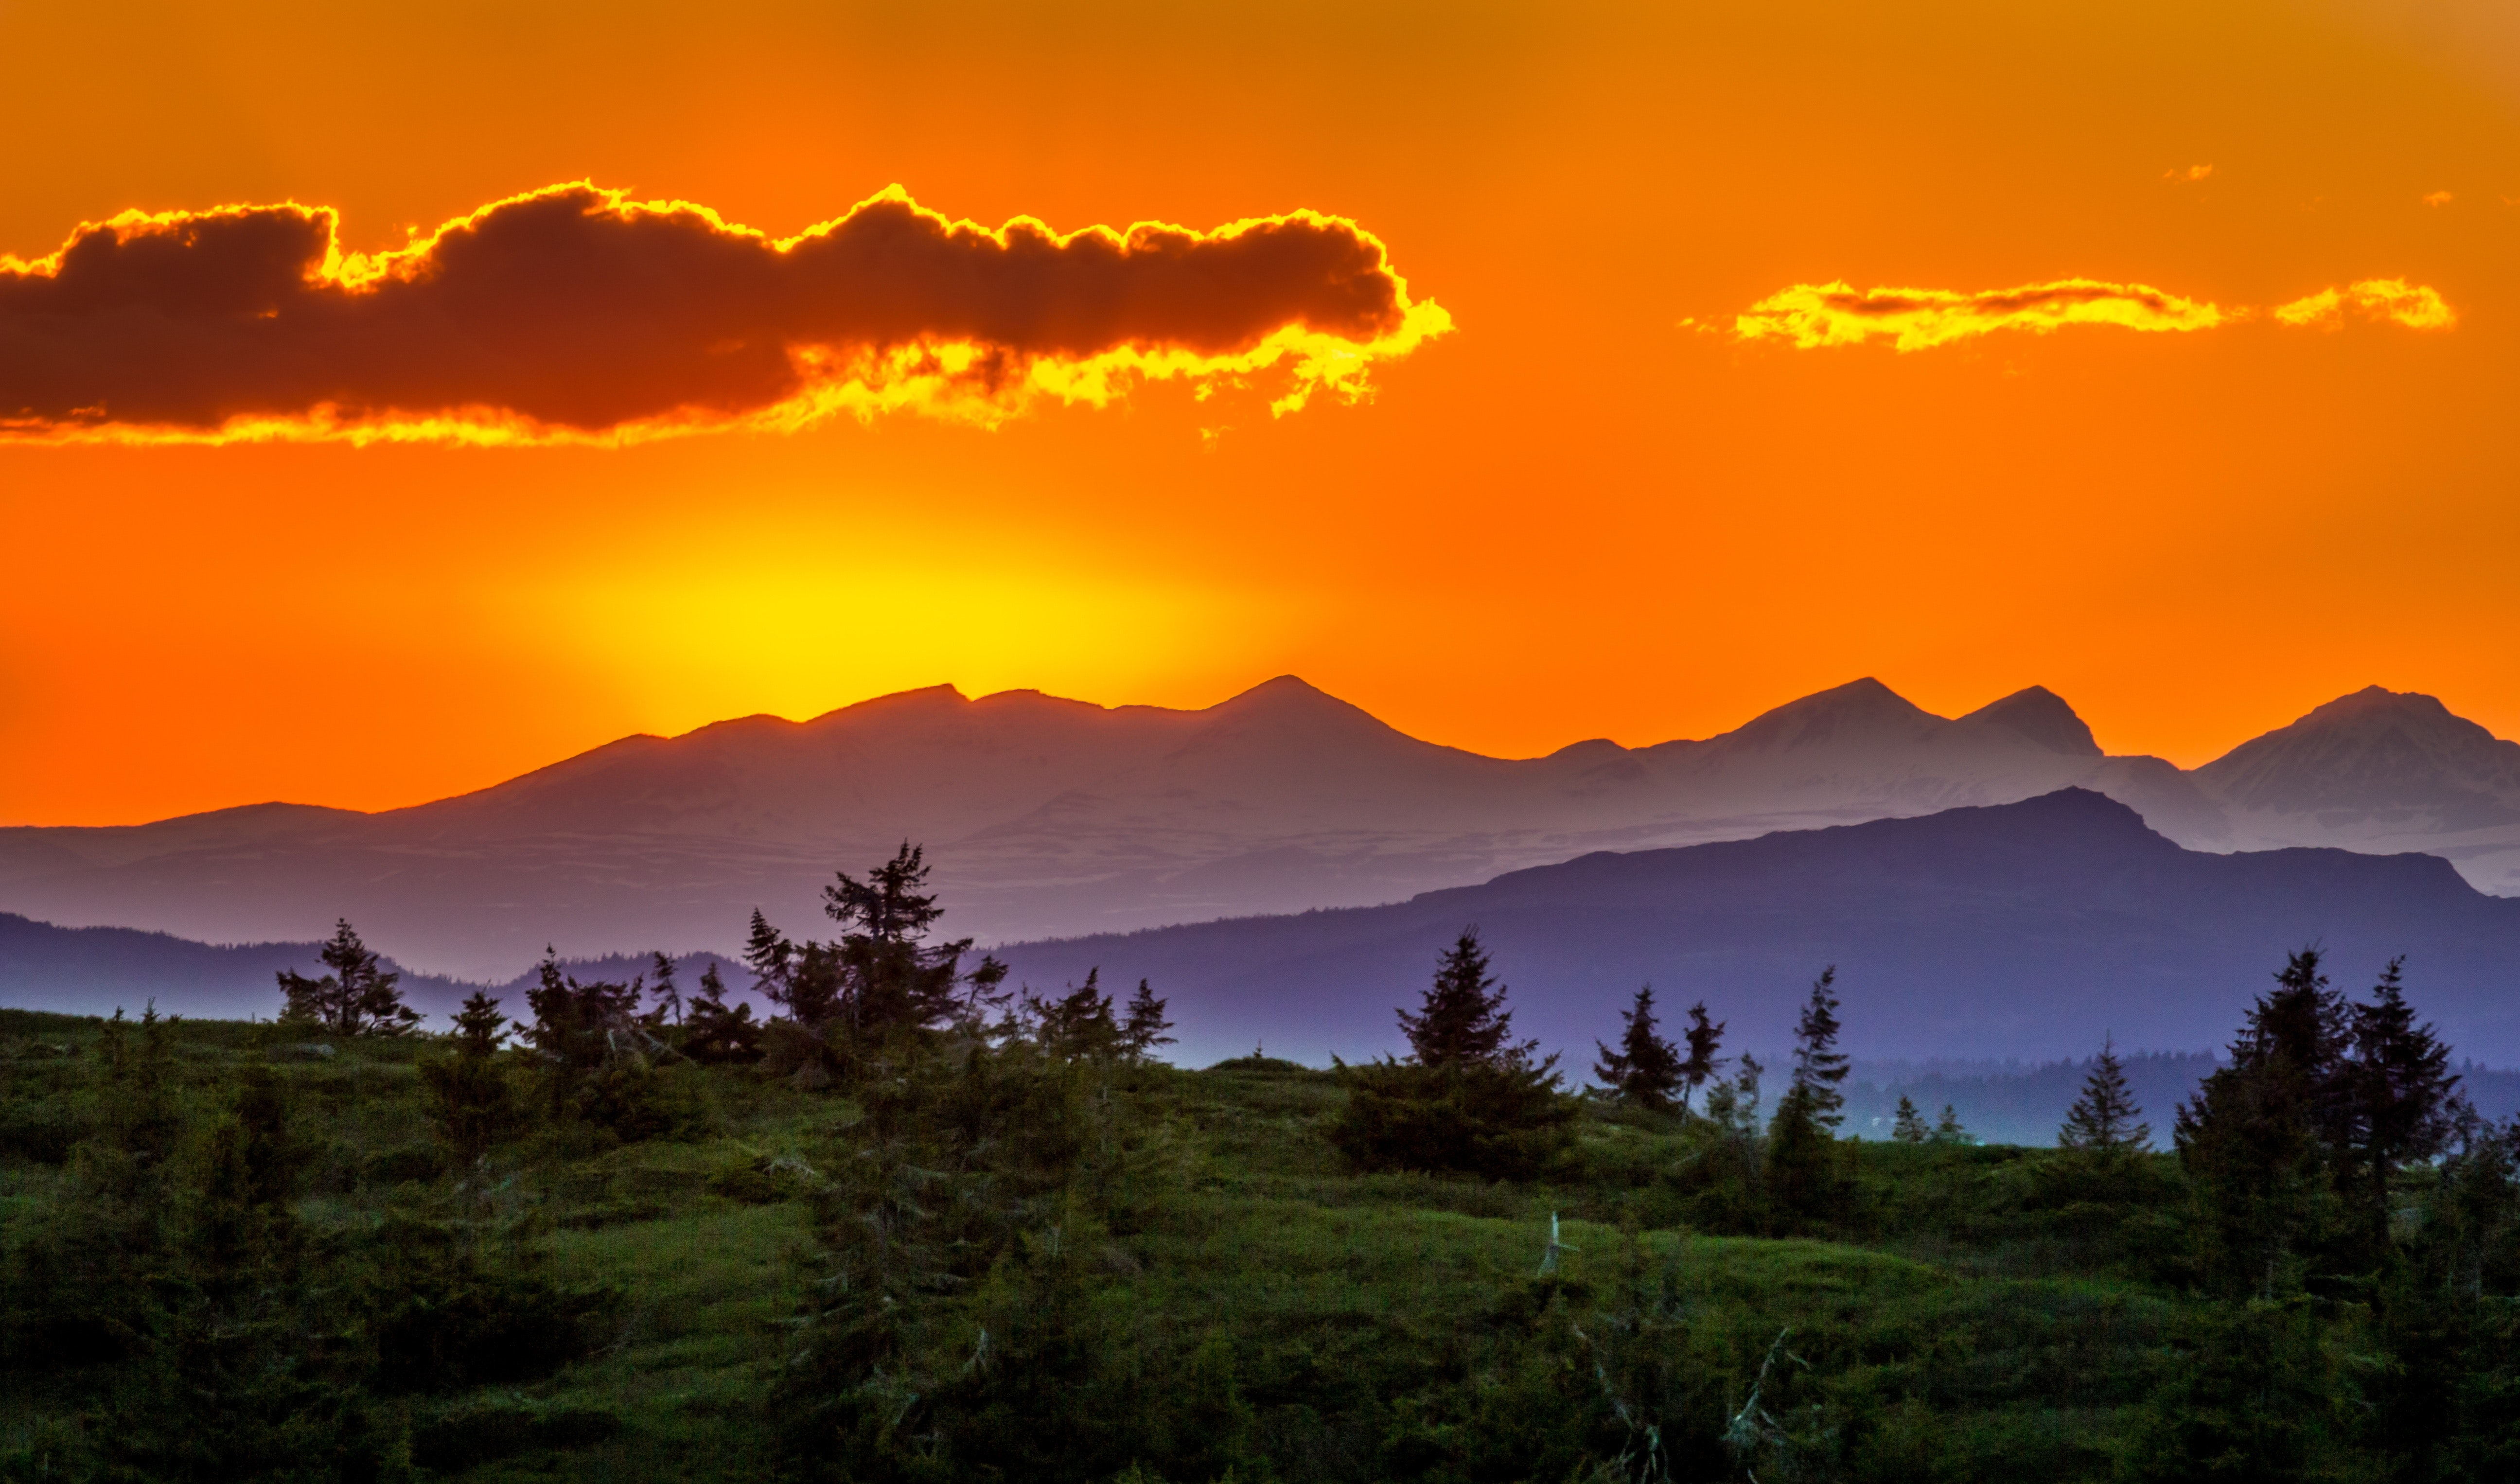 Scenic view of mountains against sky at sunset photo